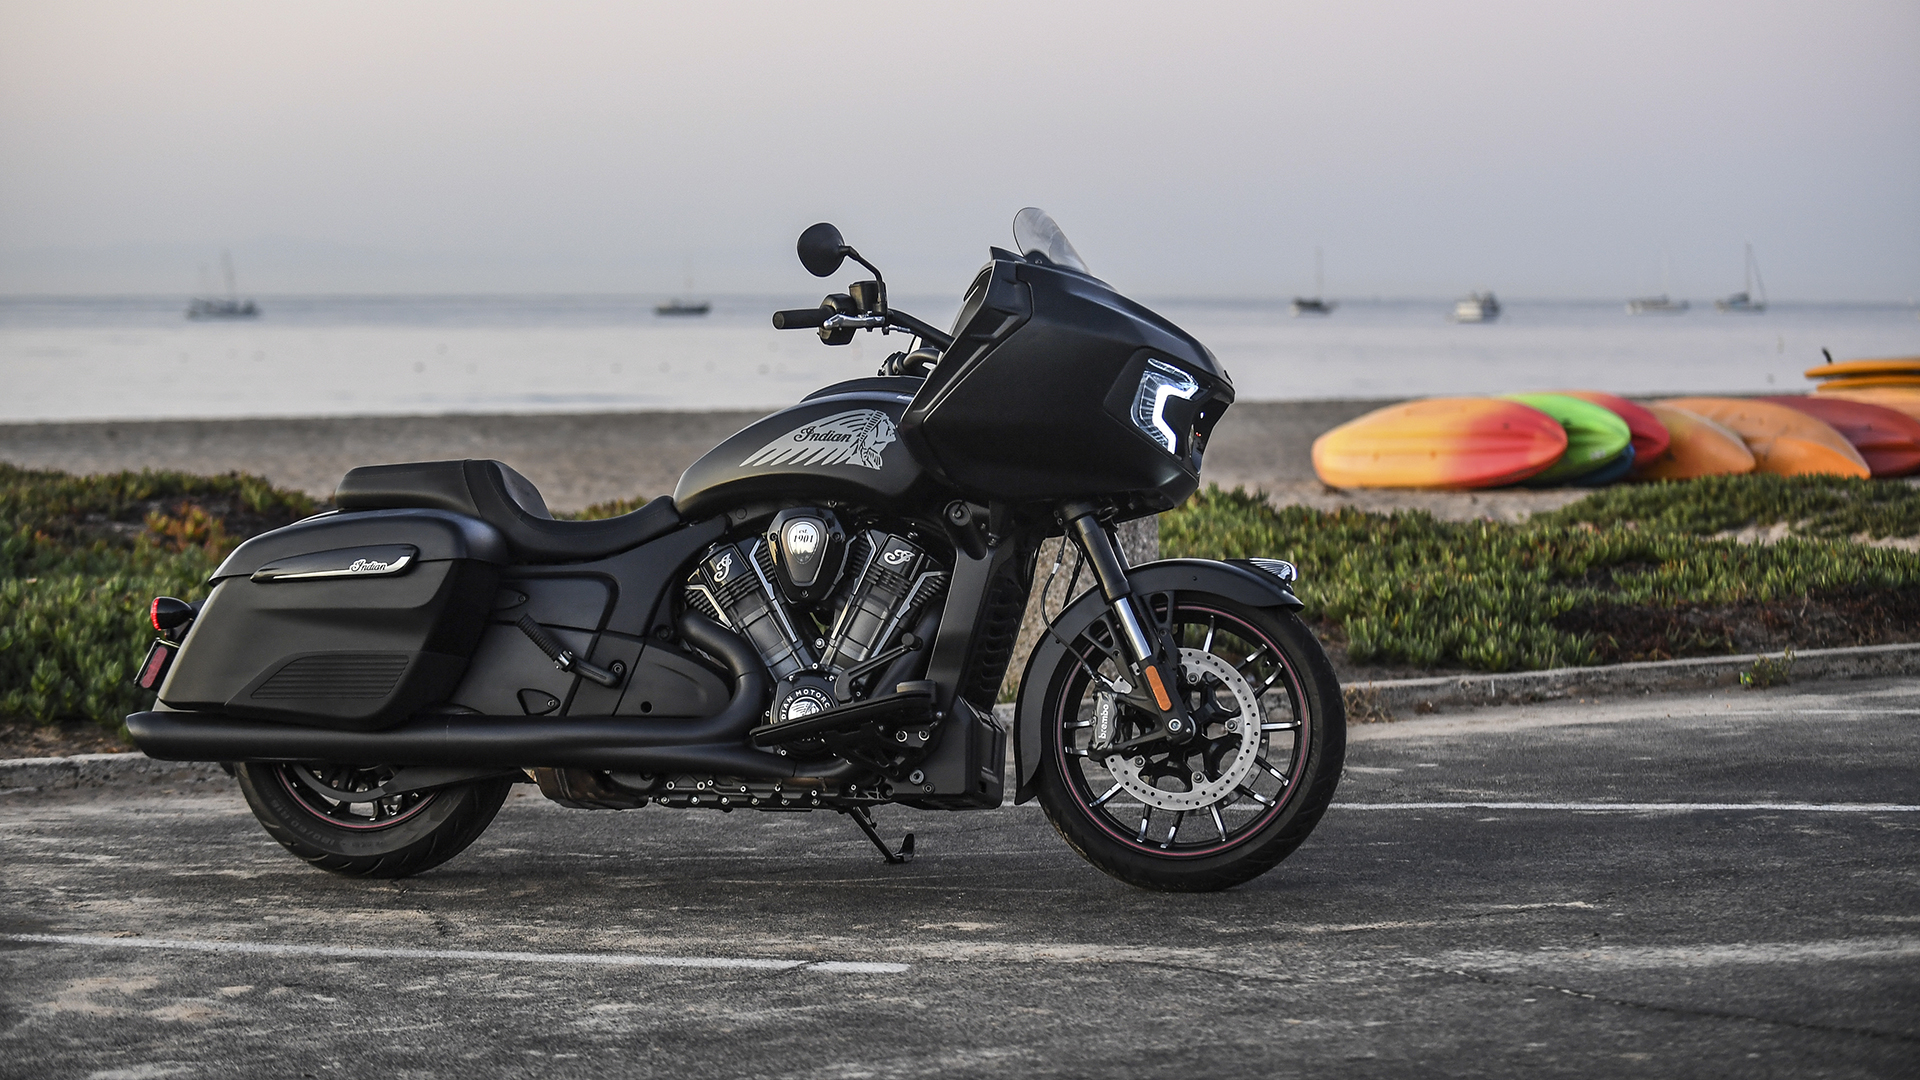 2020 Indian Motorcycle Challenger Dark Horse MC Commute Review